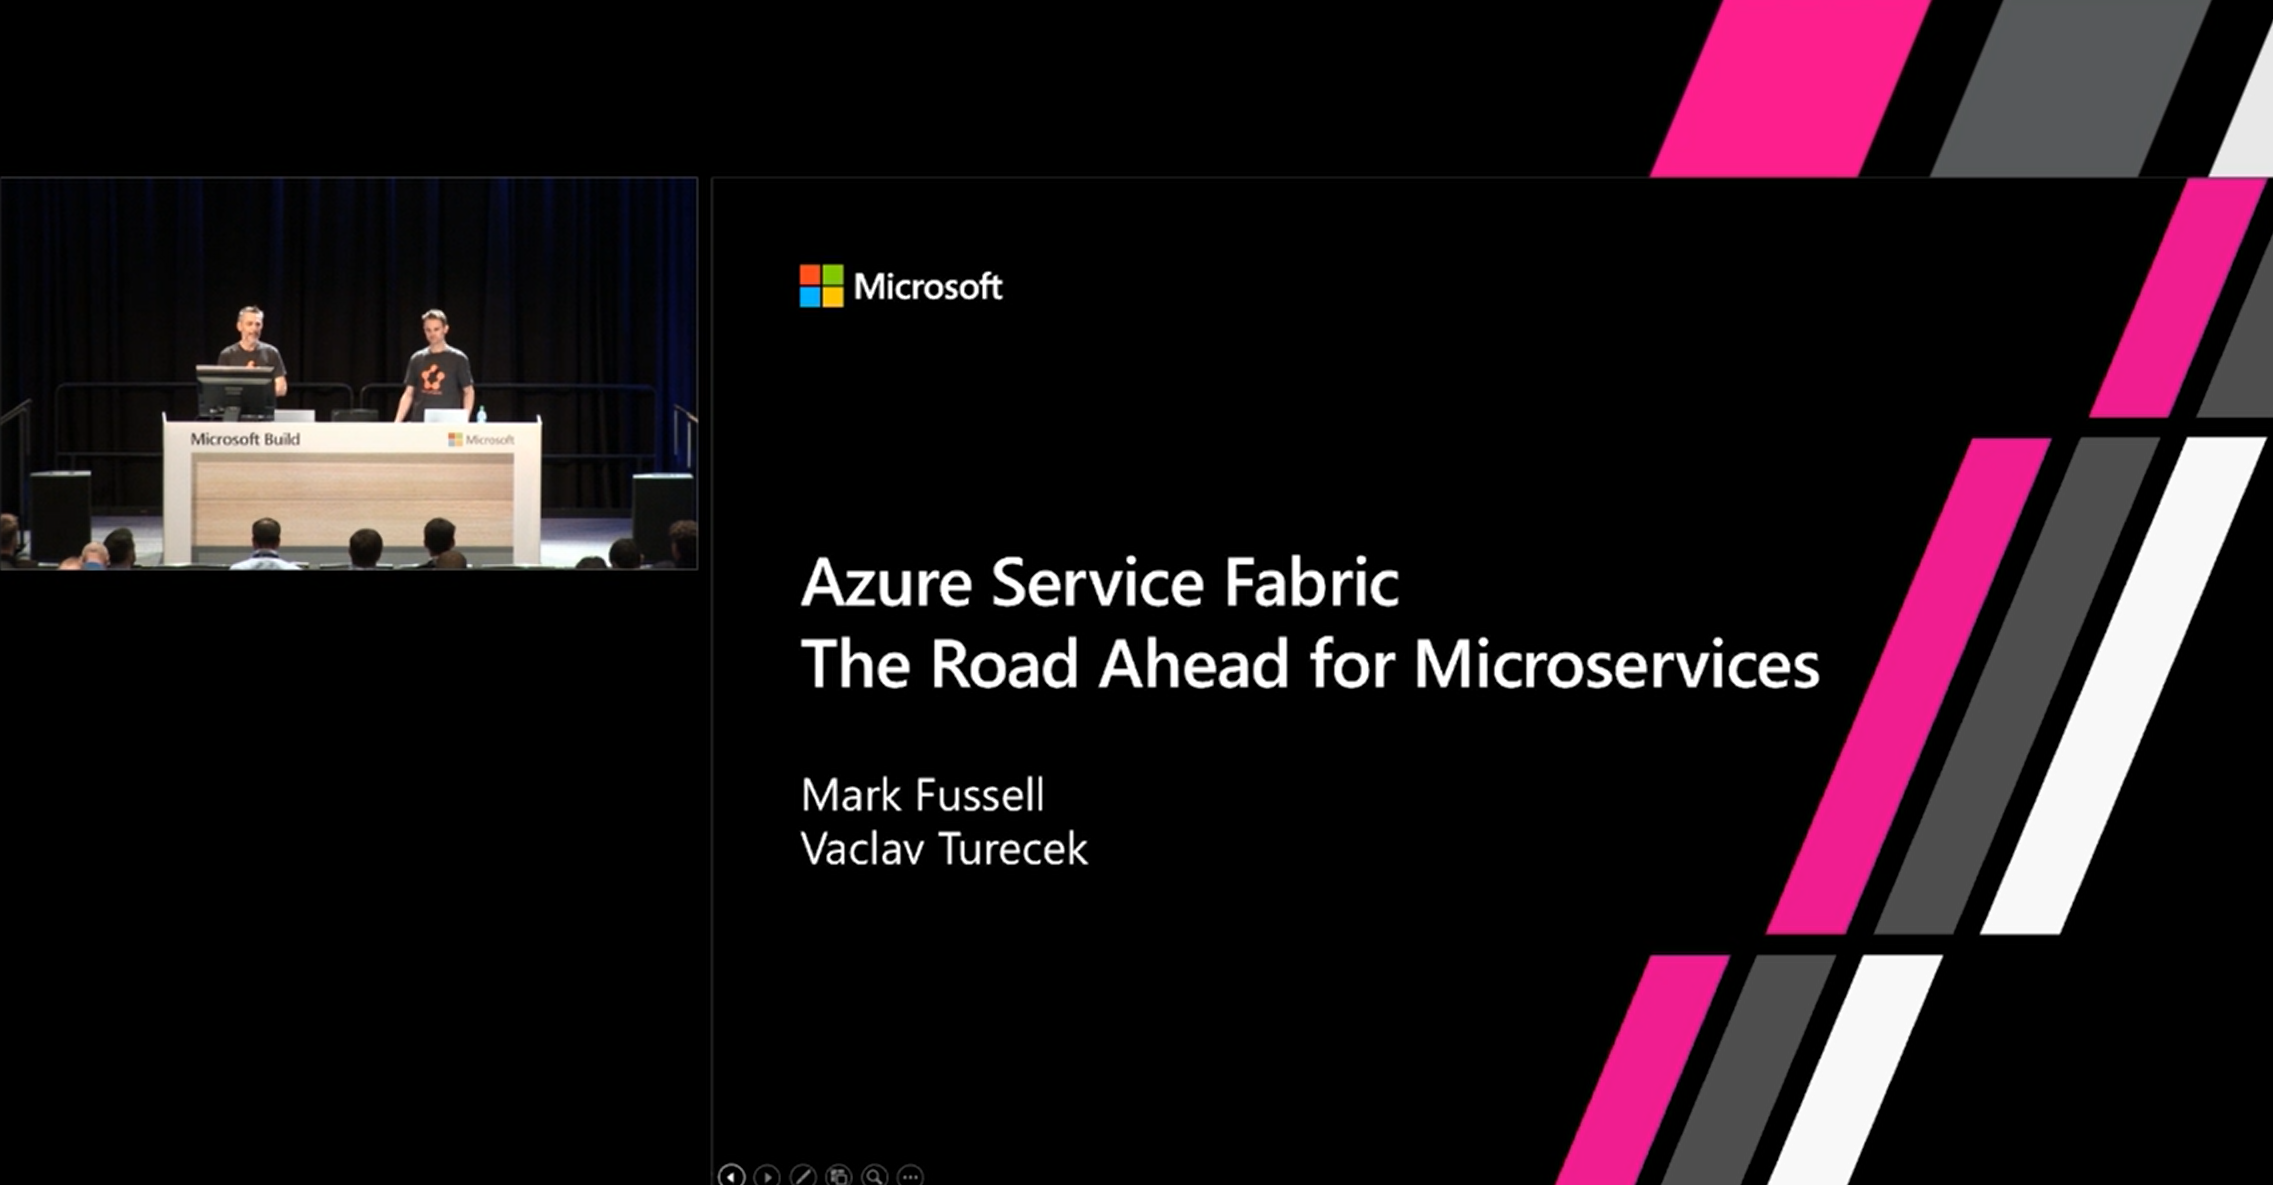 Azure Service Fabric: The road ahead for microservices